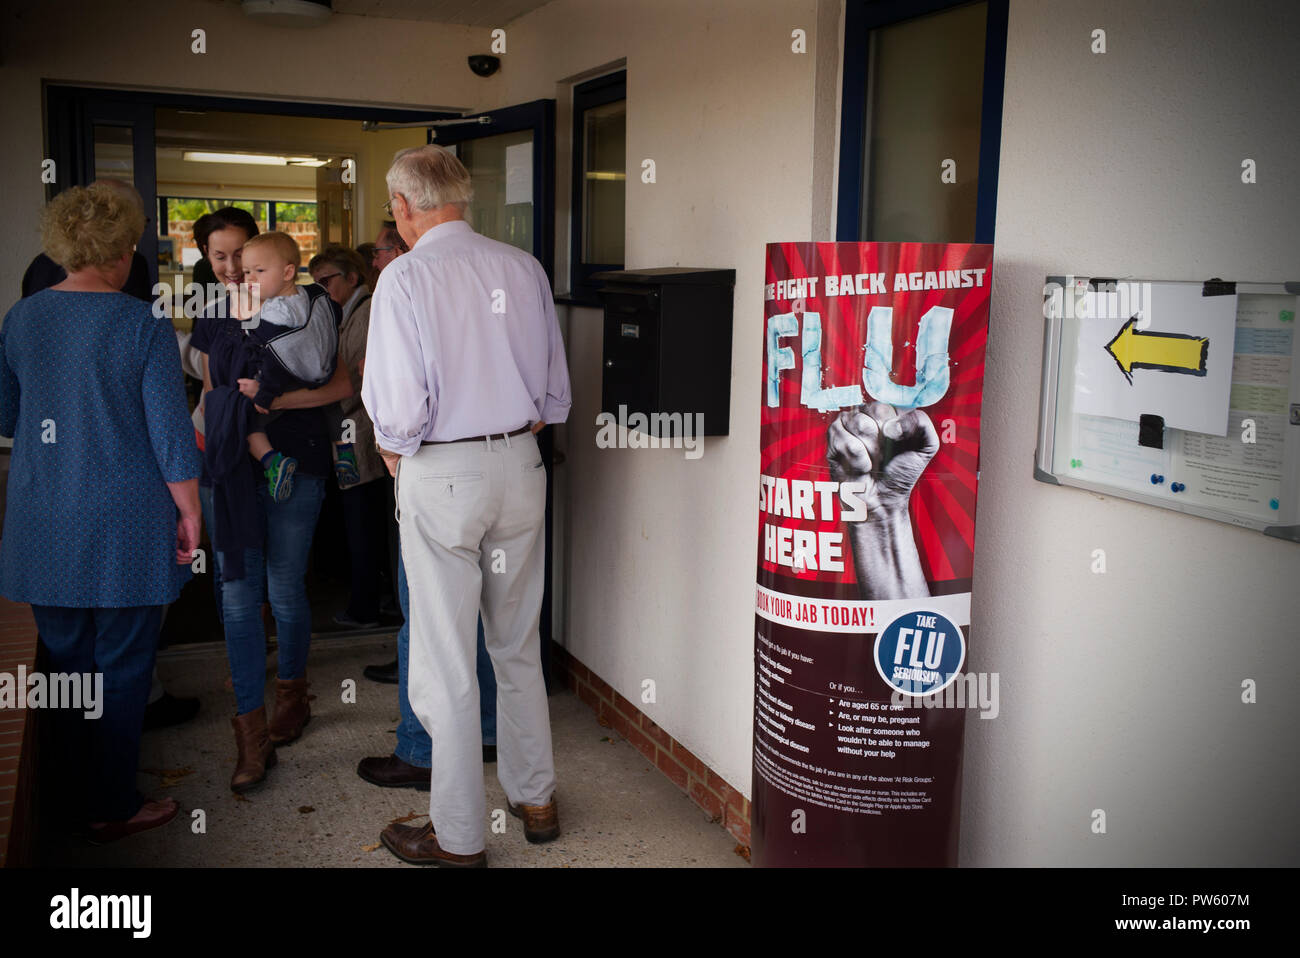 Flueathon Thaxted Essex England UK 13 Oct 2018 Residents of the small town of Thaxted in north west Essex attended the annual Fluathon organised by Thaxted Surgery when more than 600 residents had their annual 'Flu jab' top protect them through the winter months. - Stock Image